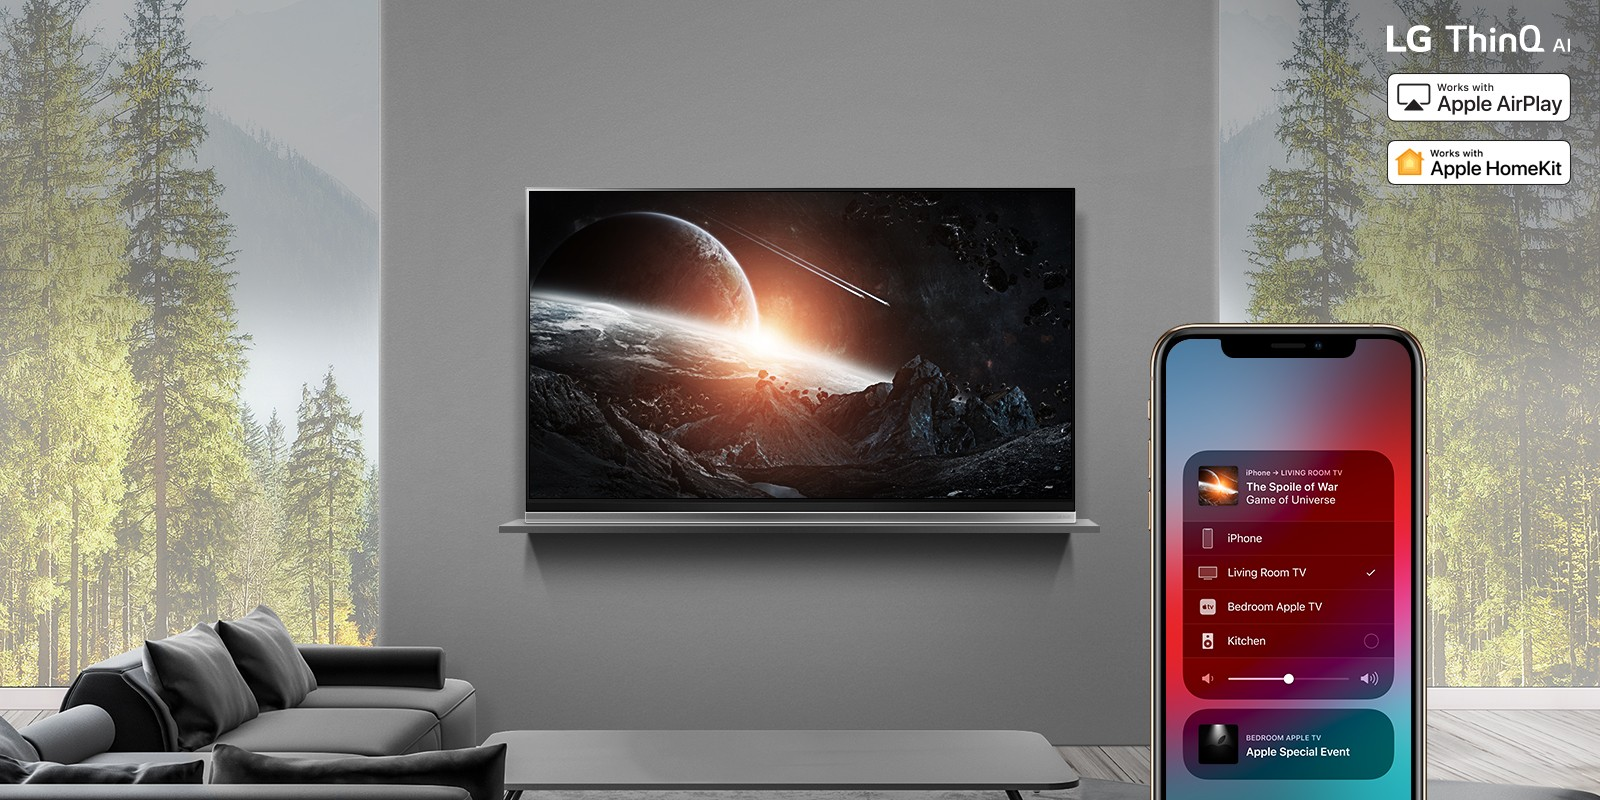 http://www.lgnewsroom.com/wp-content/uploads/2019/07/AirPlay2-on-2019-LG-ThinQ-AI-TVs_1.jpg